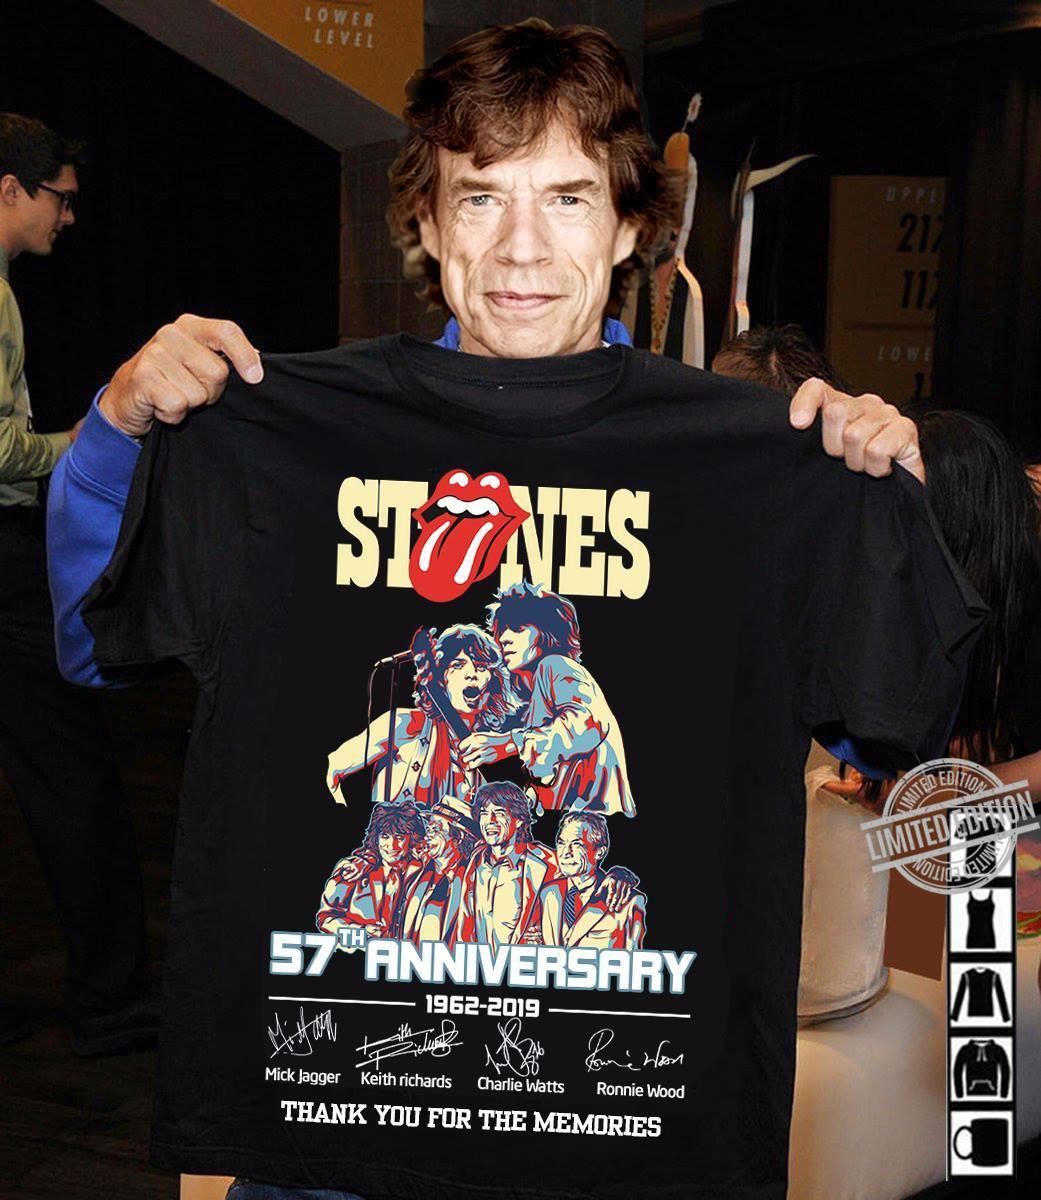 Stones 57th Anniversary Signatures Thank You For The Memories Shirt